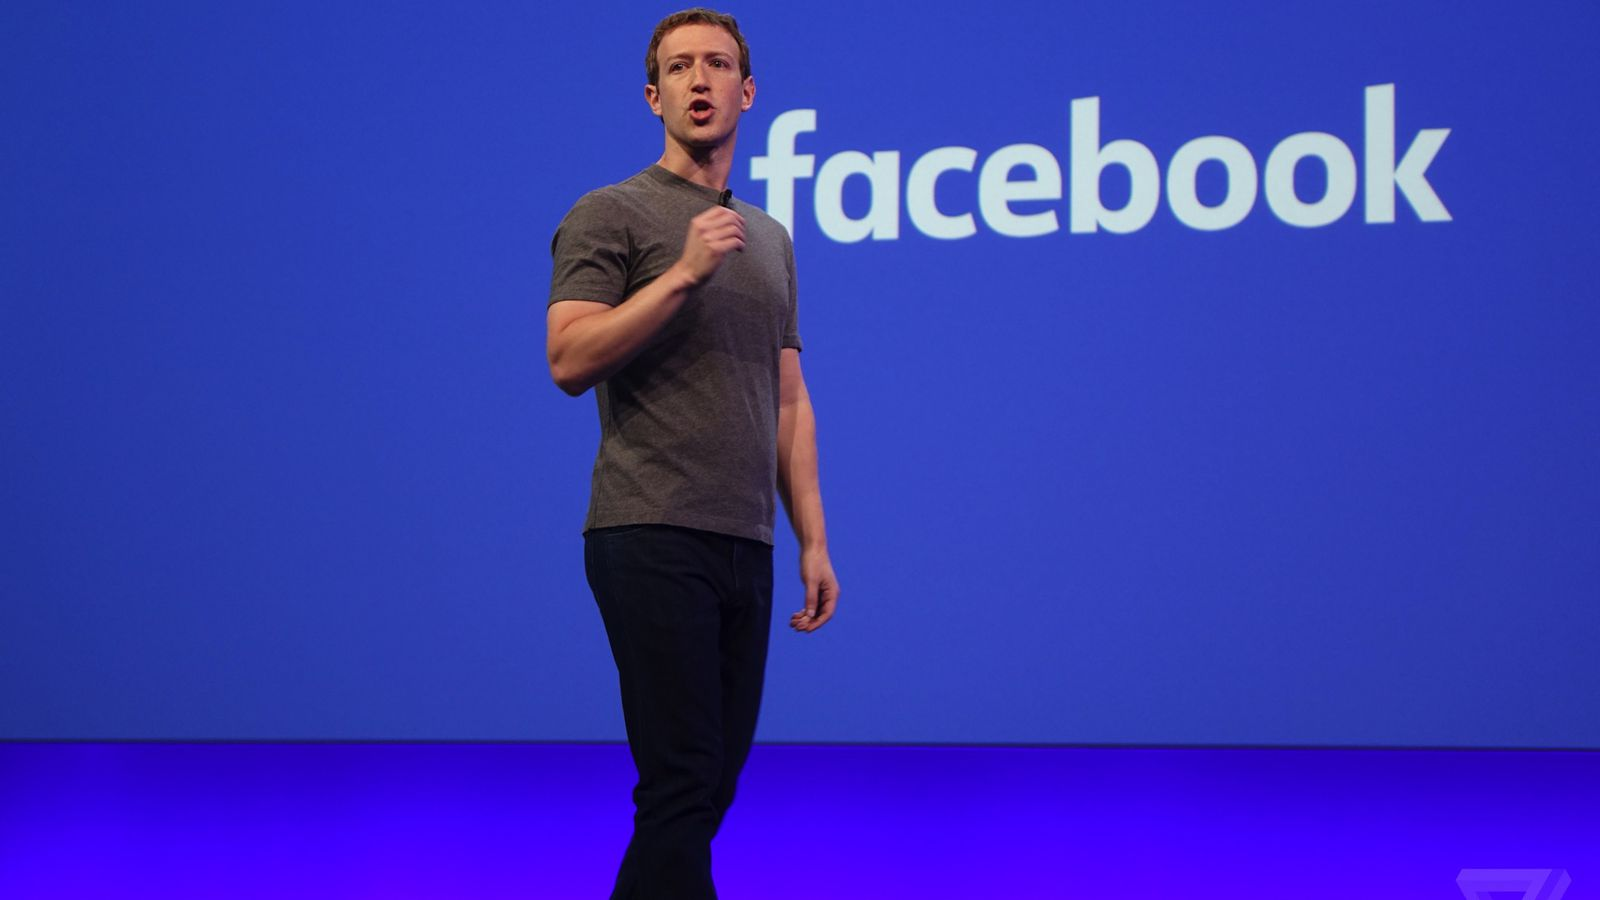 Facebook loses $100 billion in 10 days amid data scandal